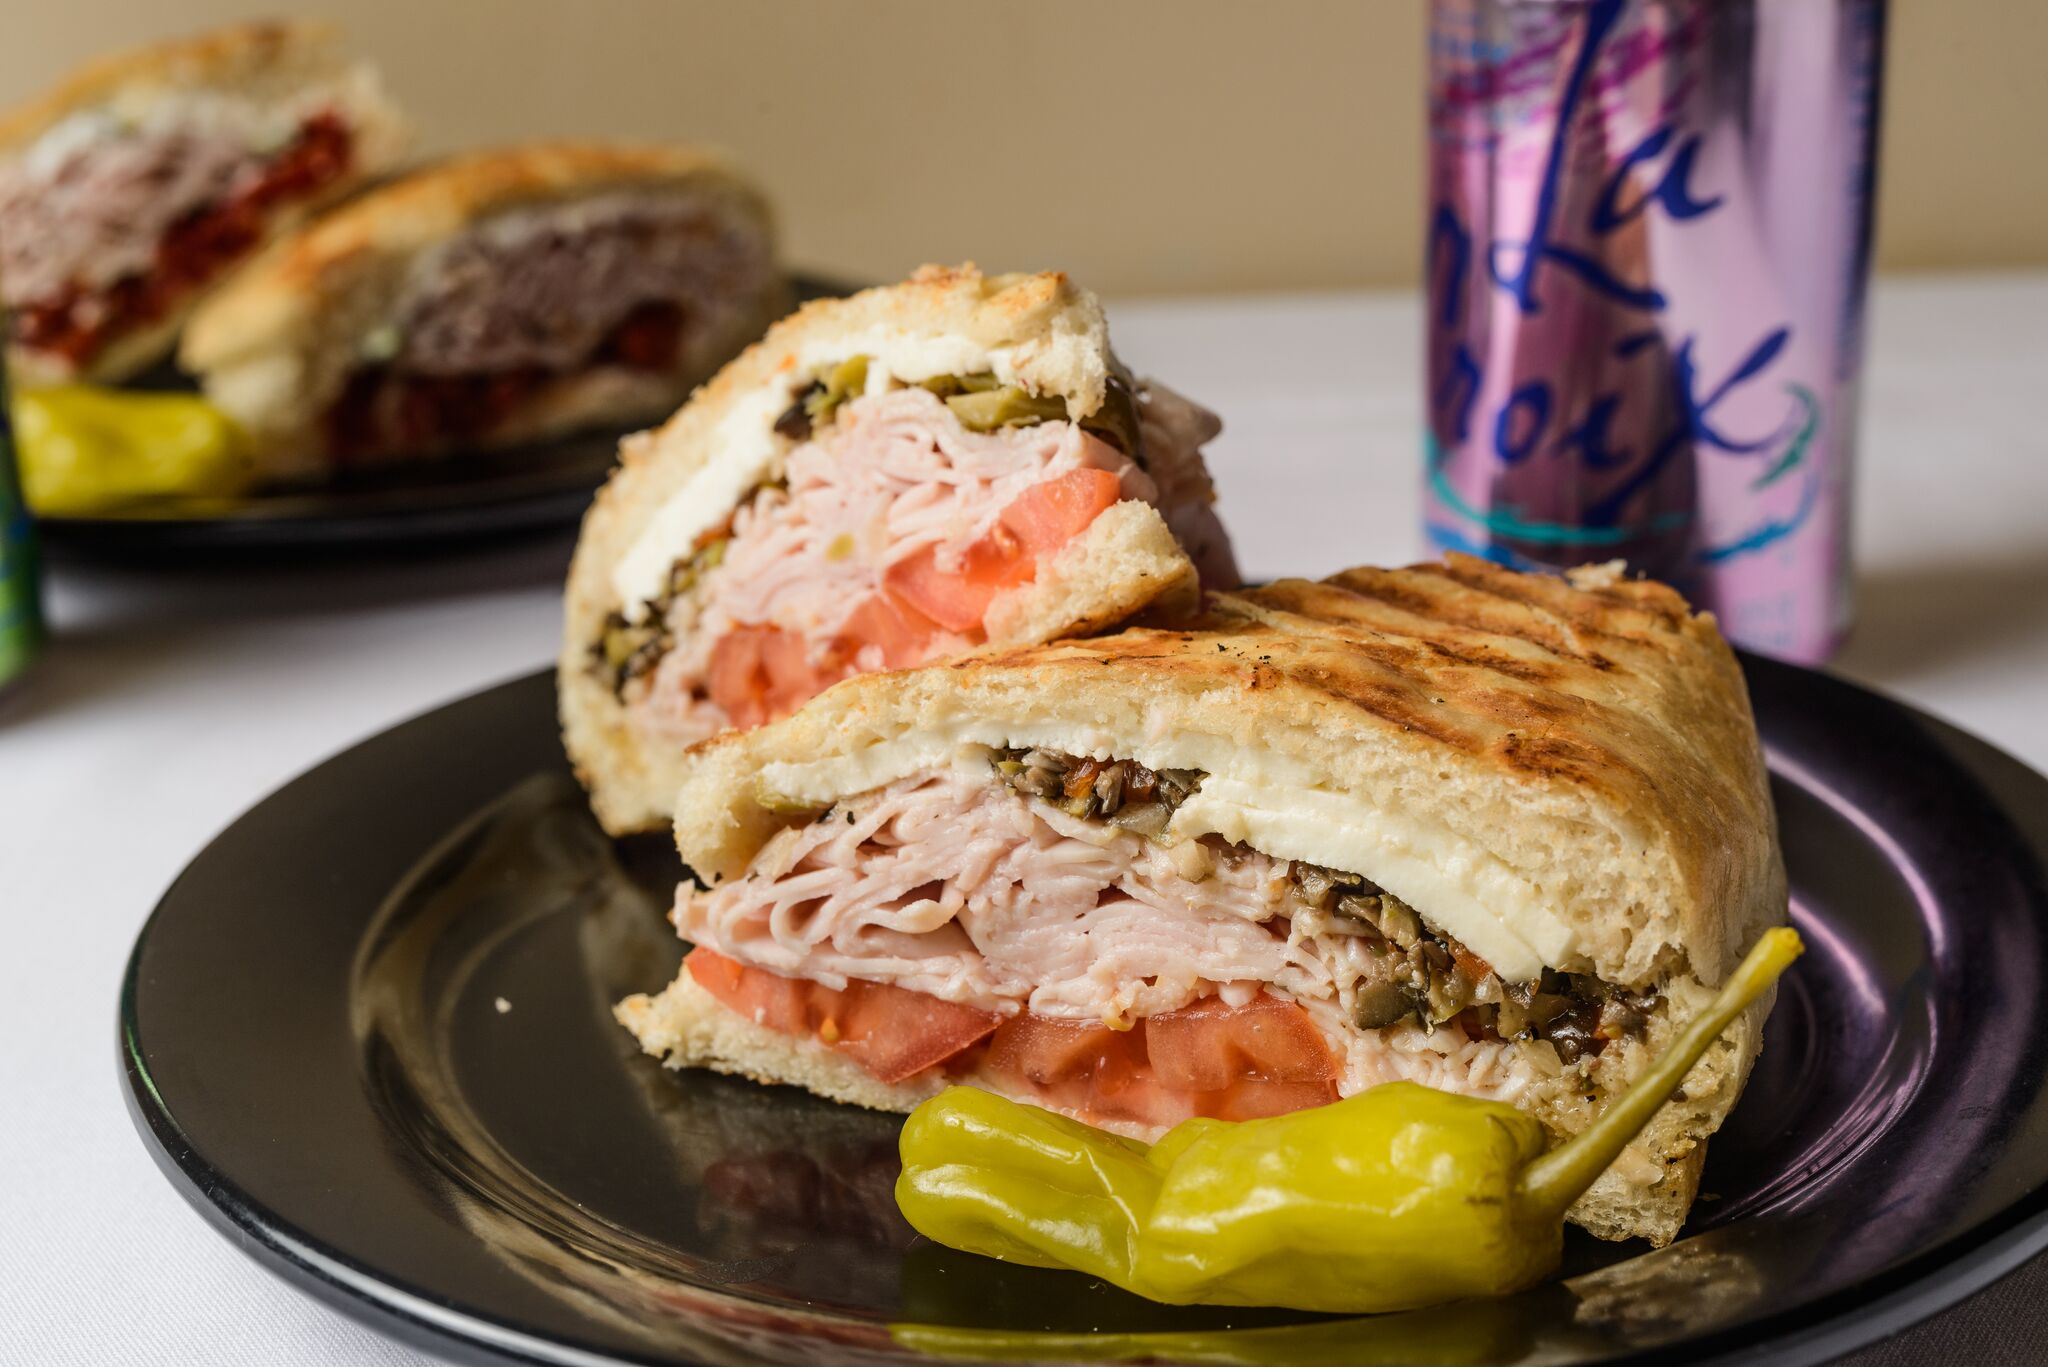 #4 - $8.50 - The Slam – Ham, salami, fresh mozzarella, roasted red bell peppers, pesto mayo and olive salad